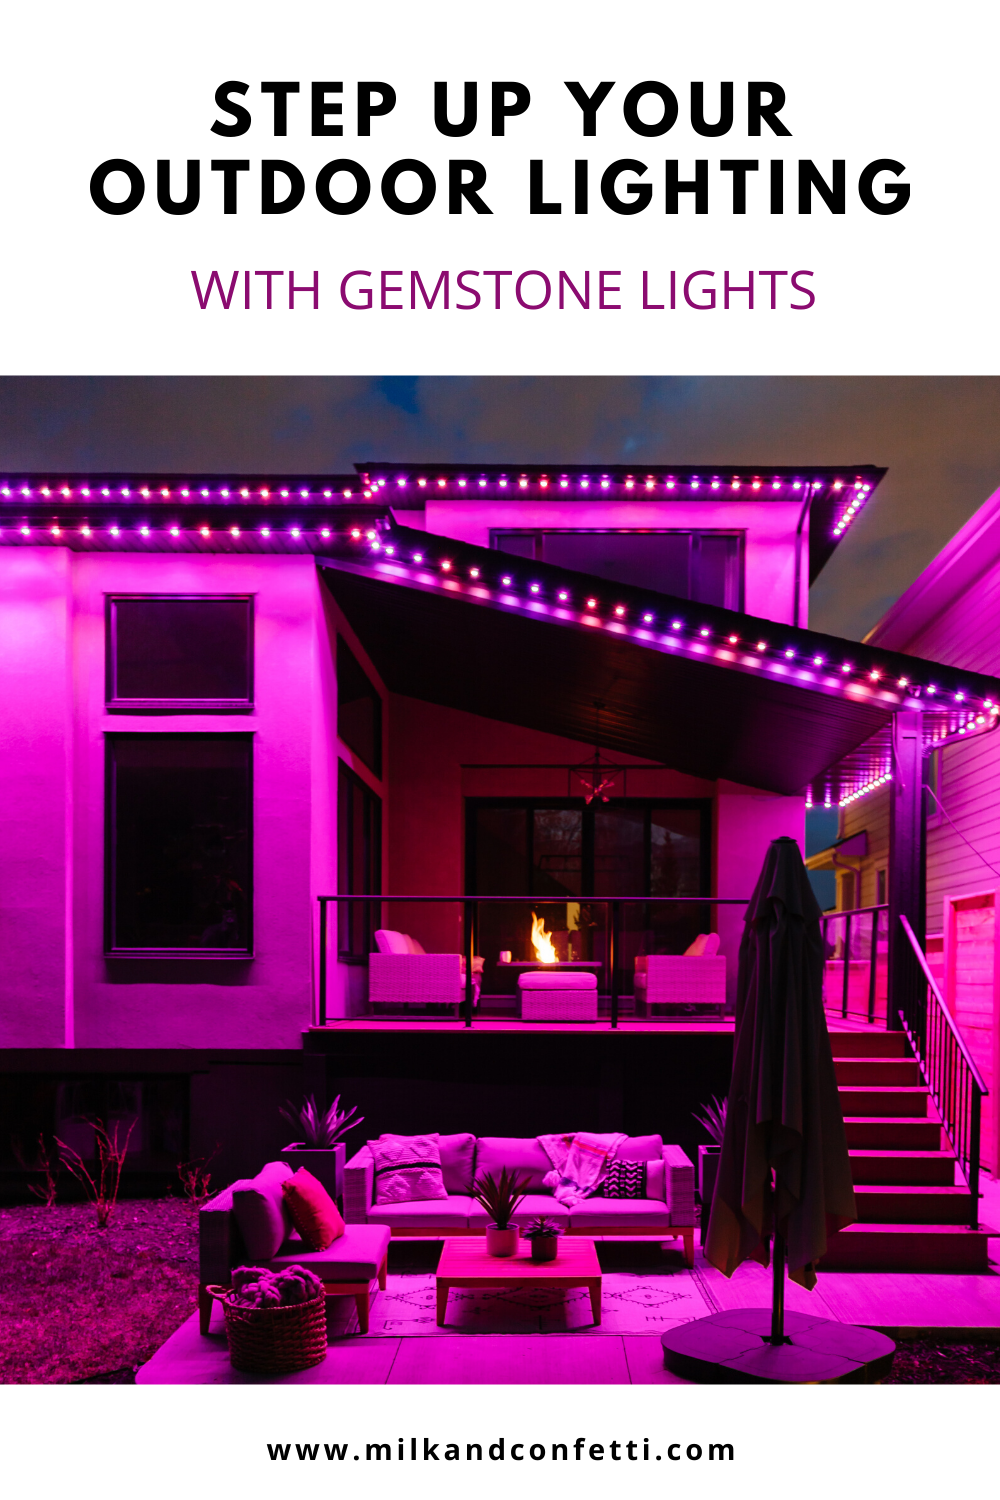 Gemstone lights smart outdoor lights for all occasions on a modern home exterior